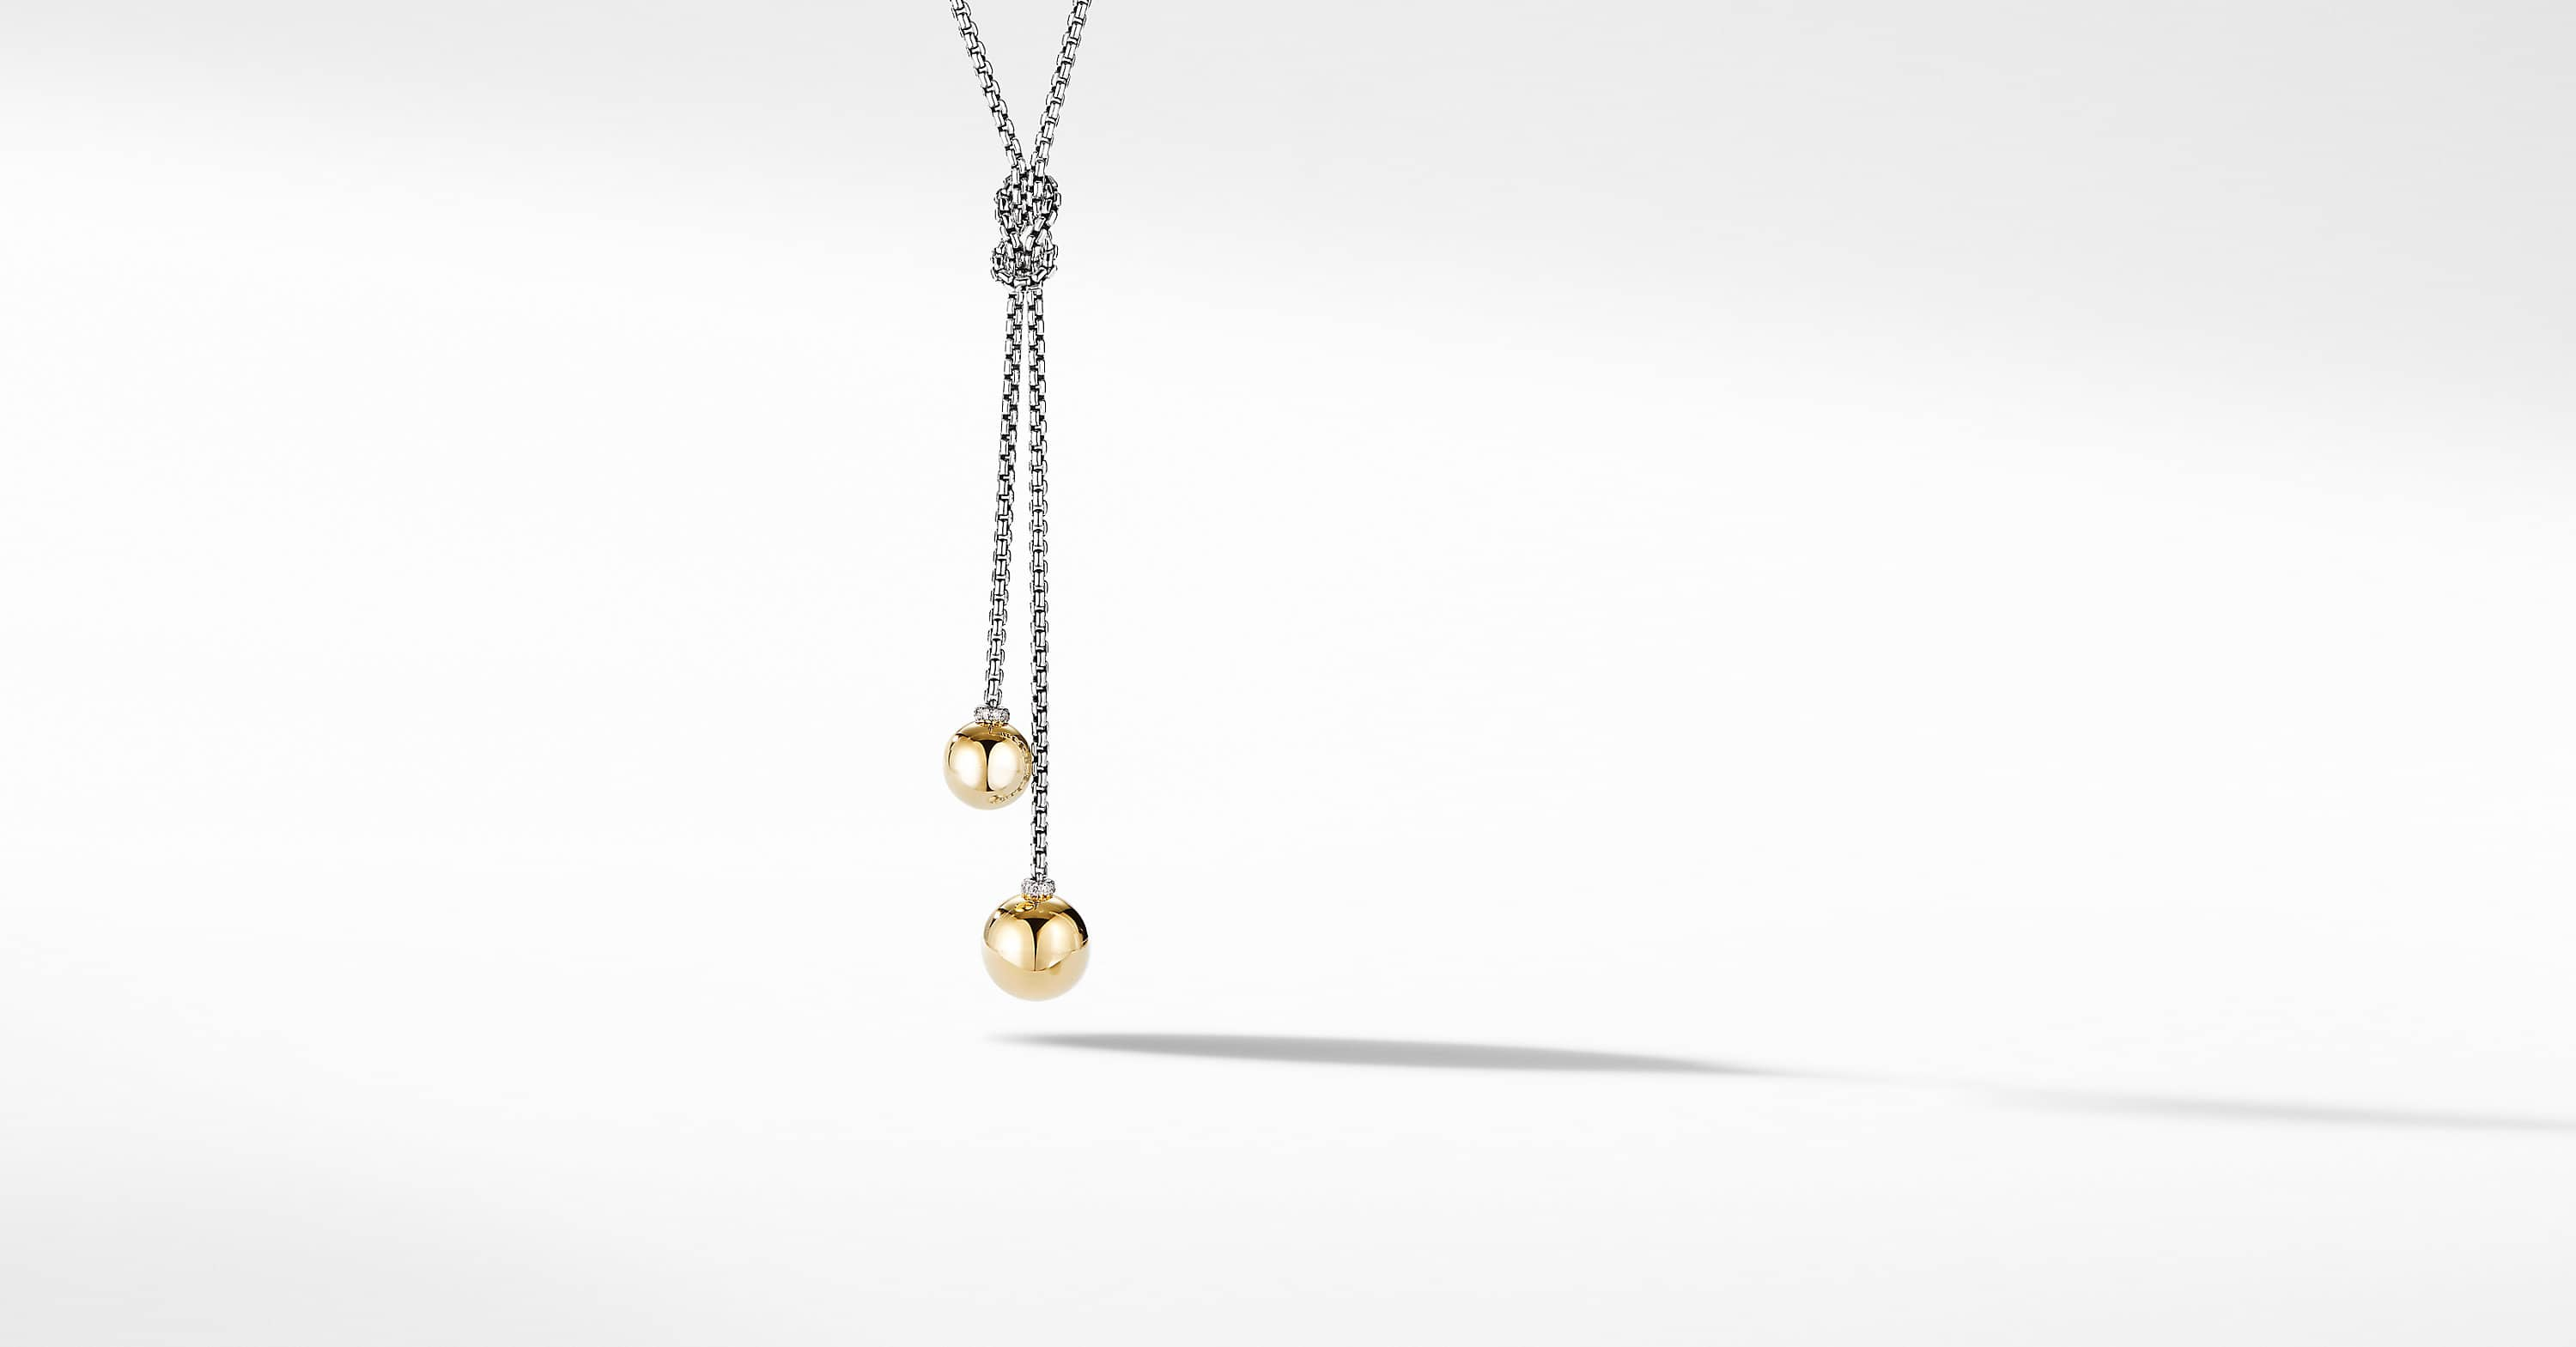 Solari Knot Necklace with 18K Yellow Gold and Pavé